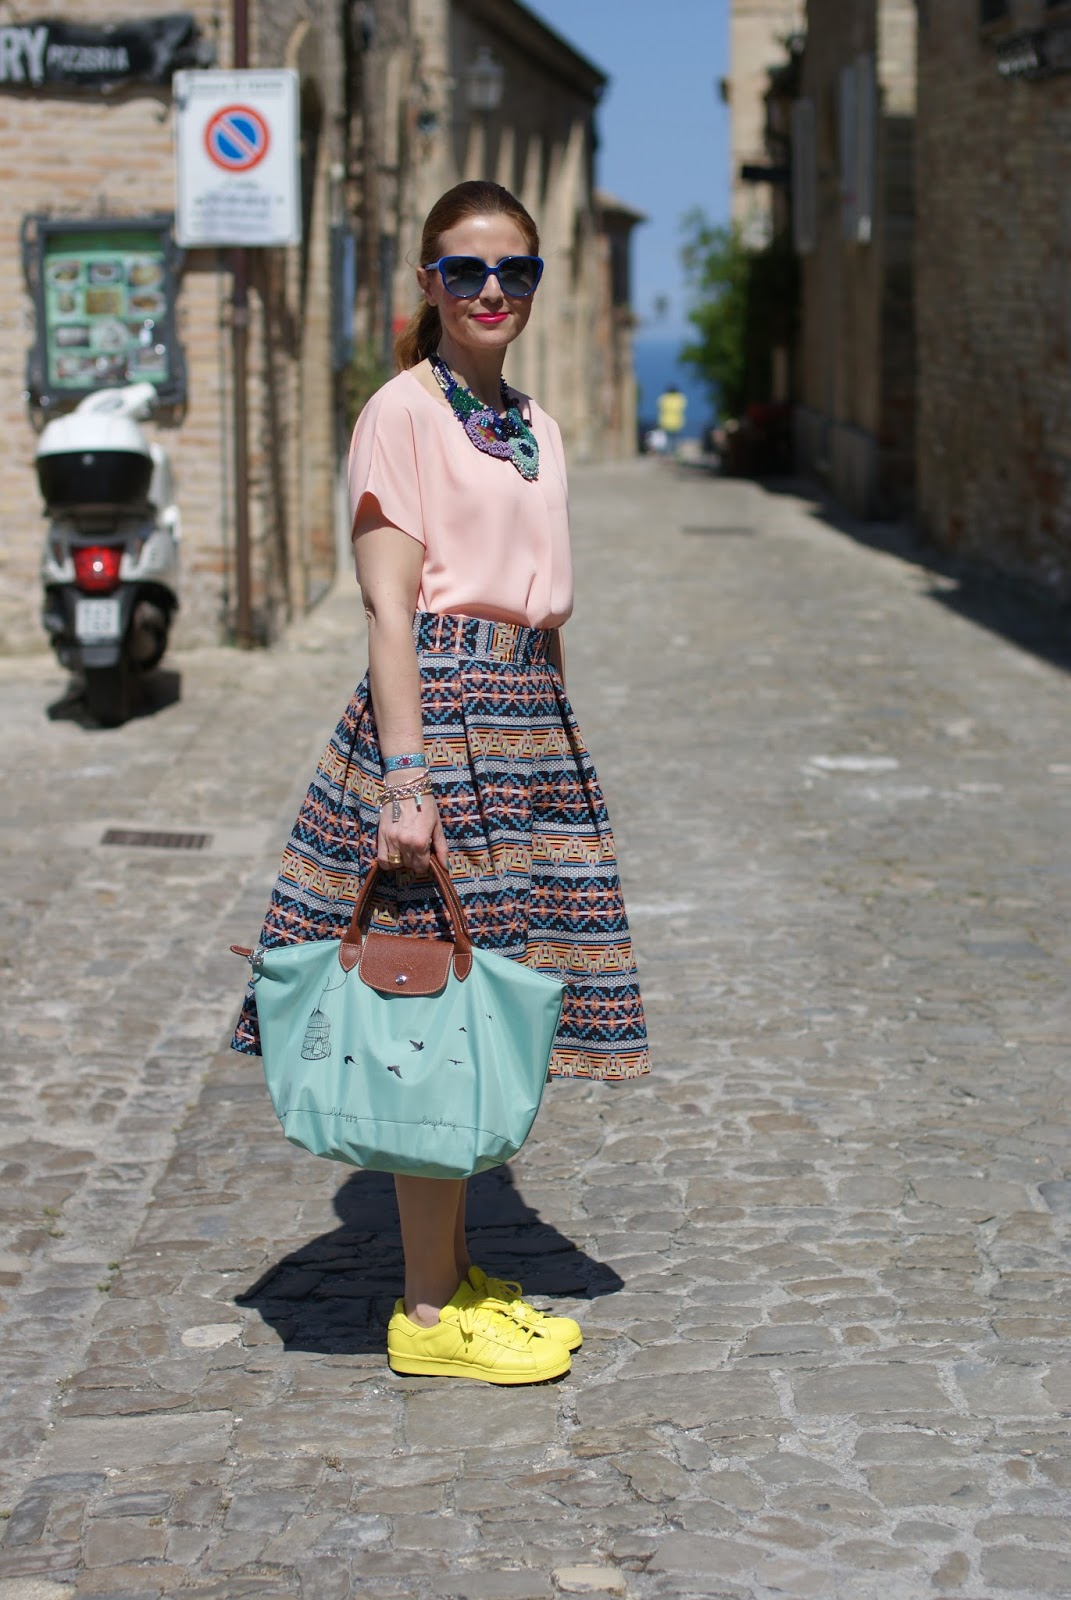 Fashion and Cookies Vale with Longchamp Le Pliage tote and sneakers, fashion blogger from Italy